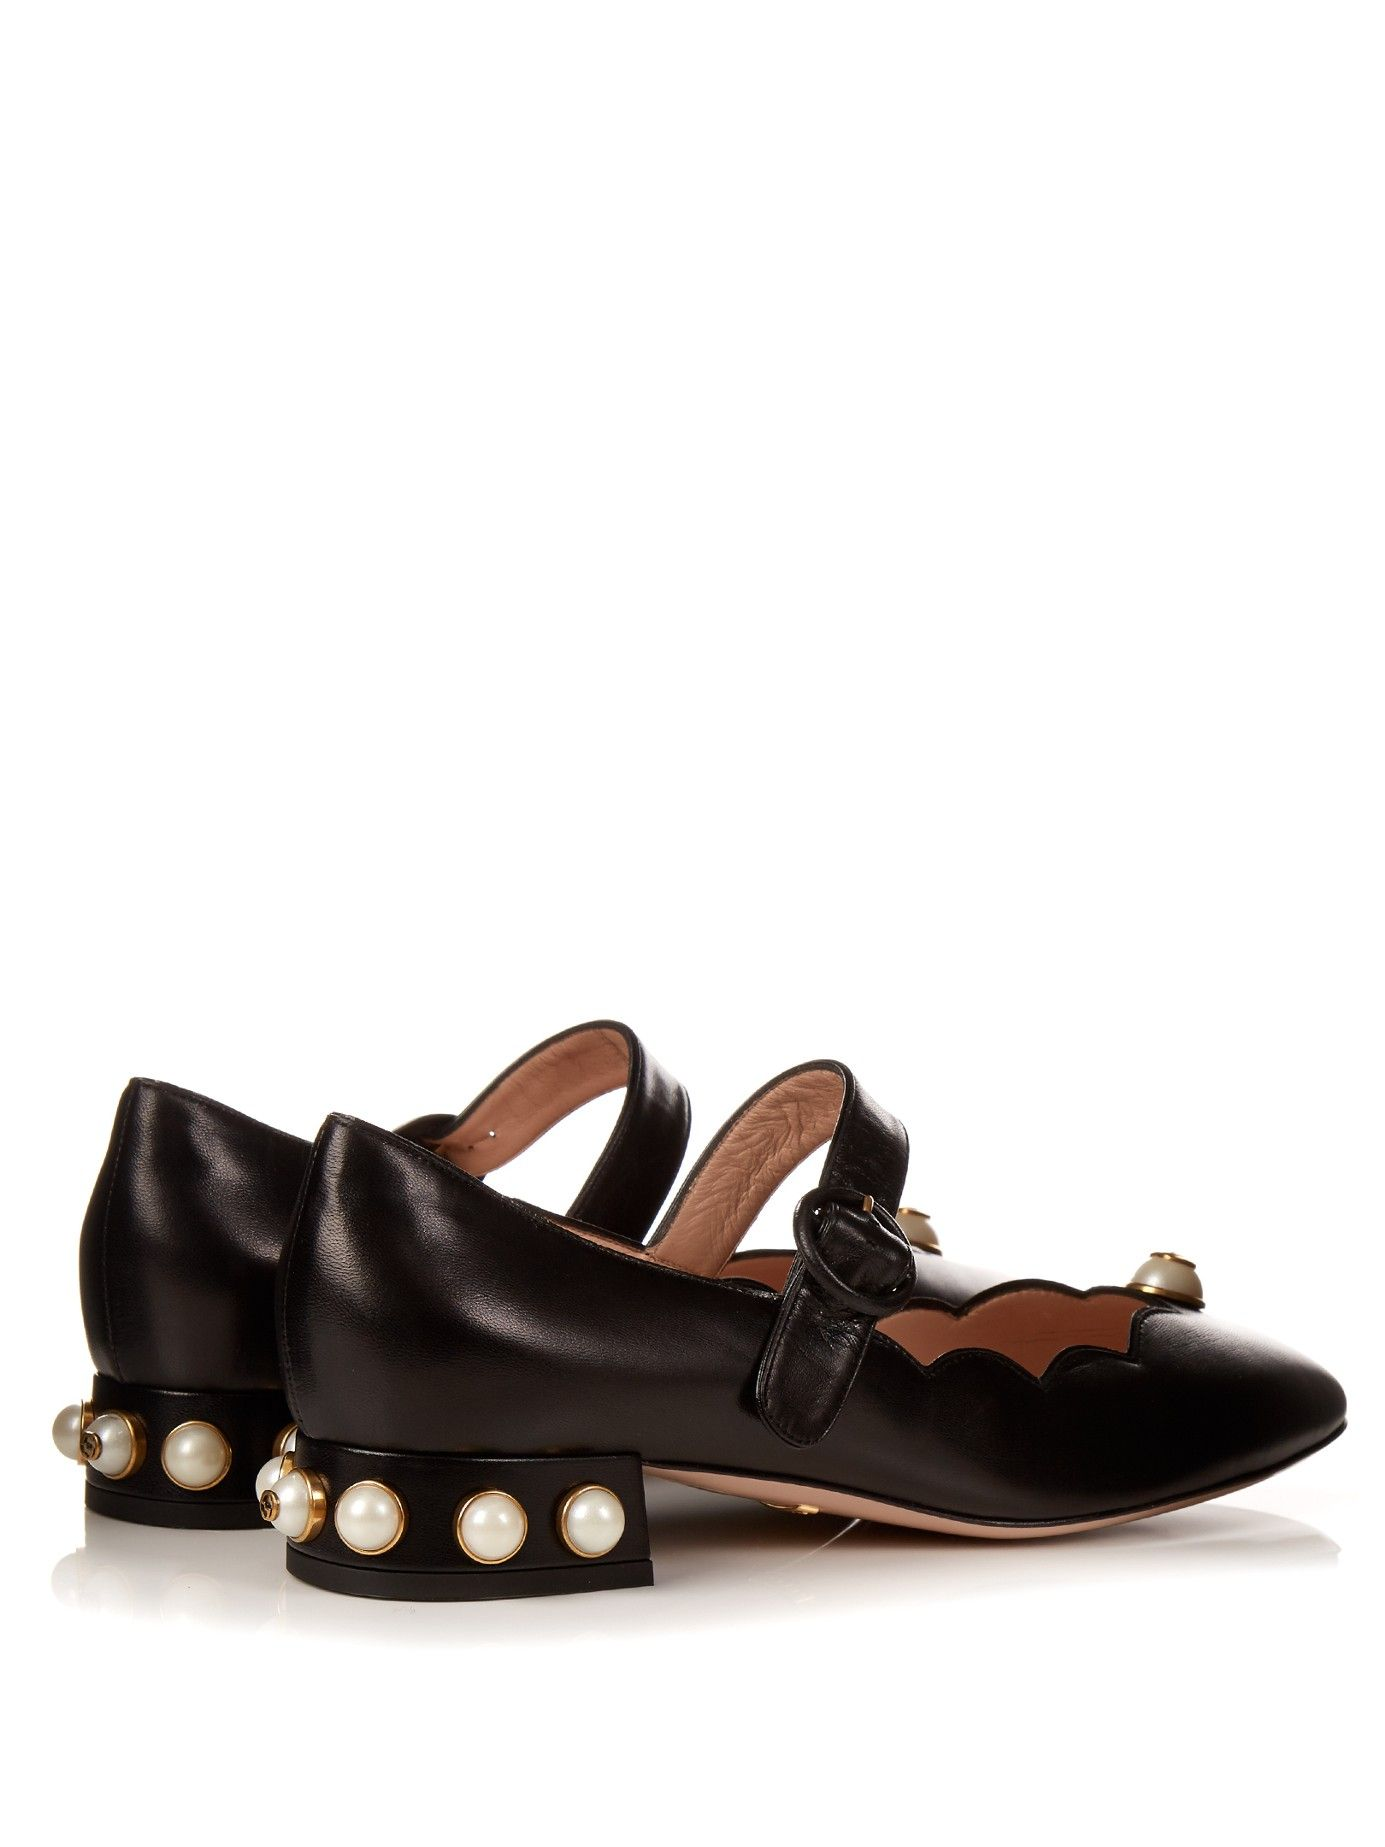 3469054b4 Willow faux-pearl embellished leather ballet pumps | Gucci |  MATCHESFASHION.COM US